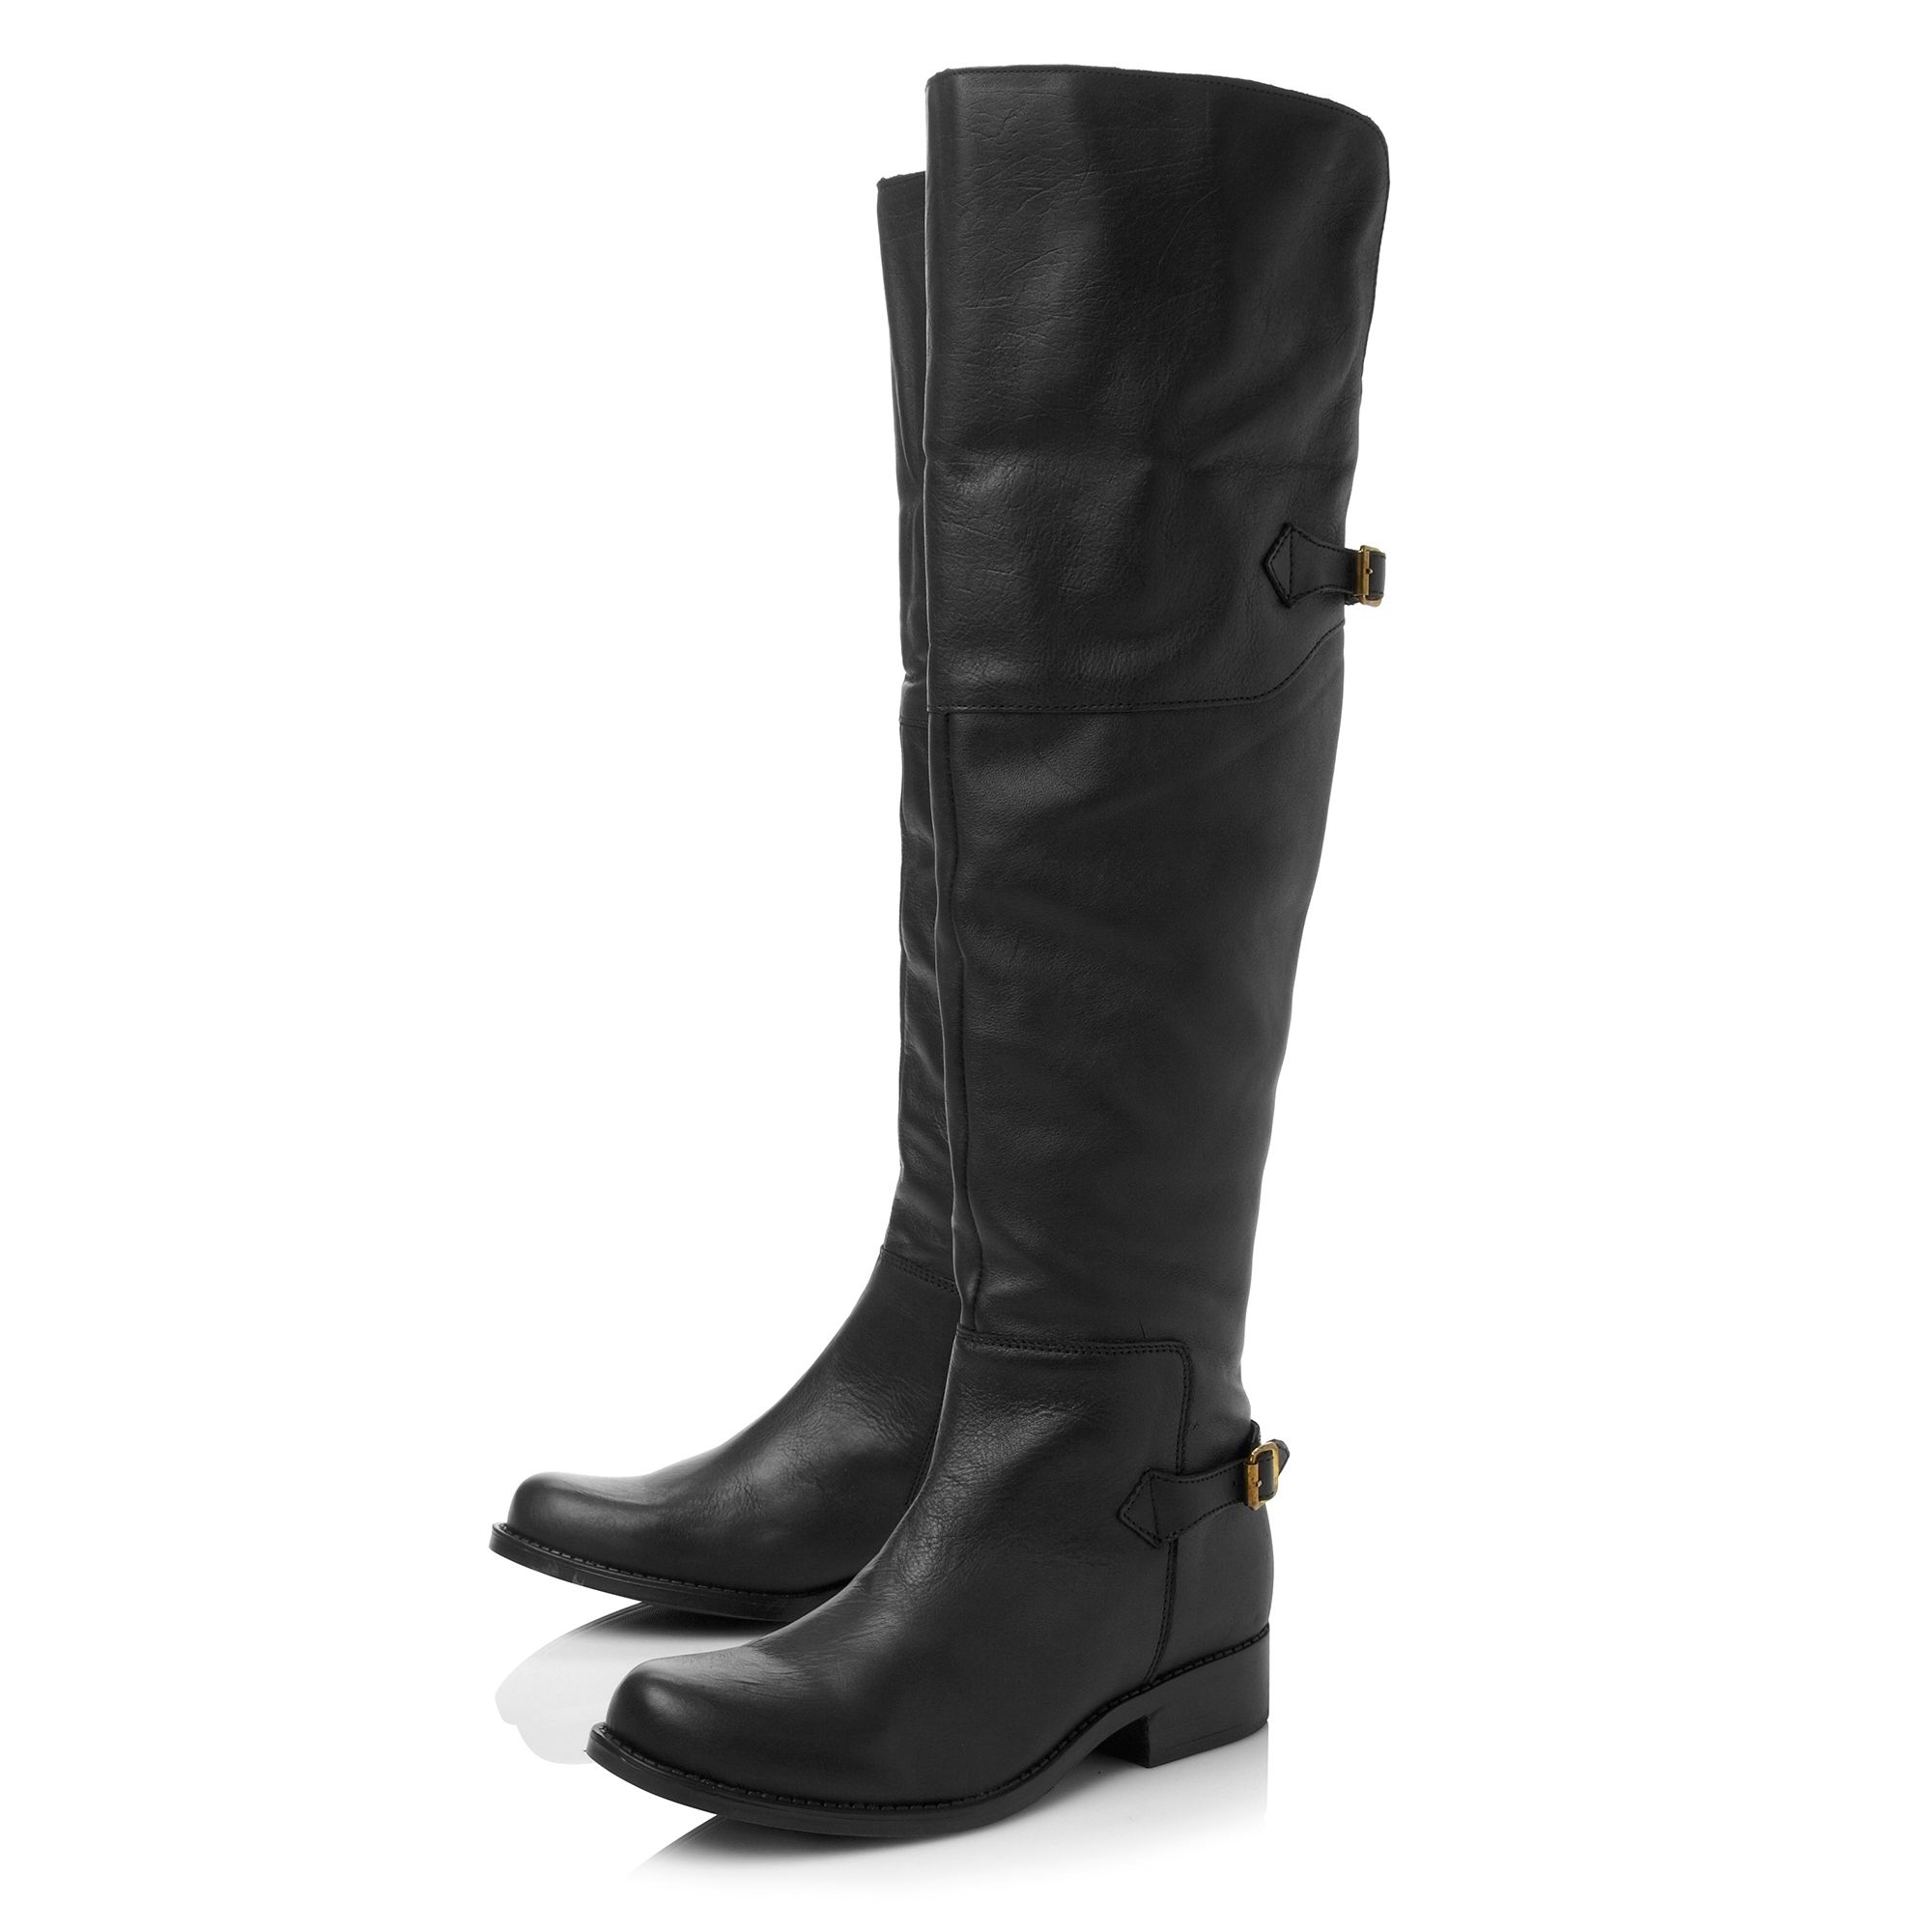 Ottowa SM leather riding boots